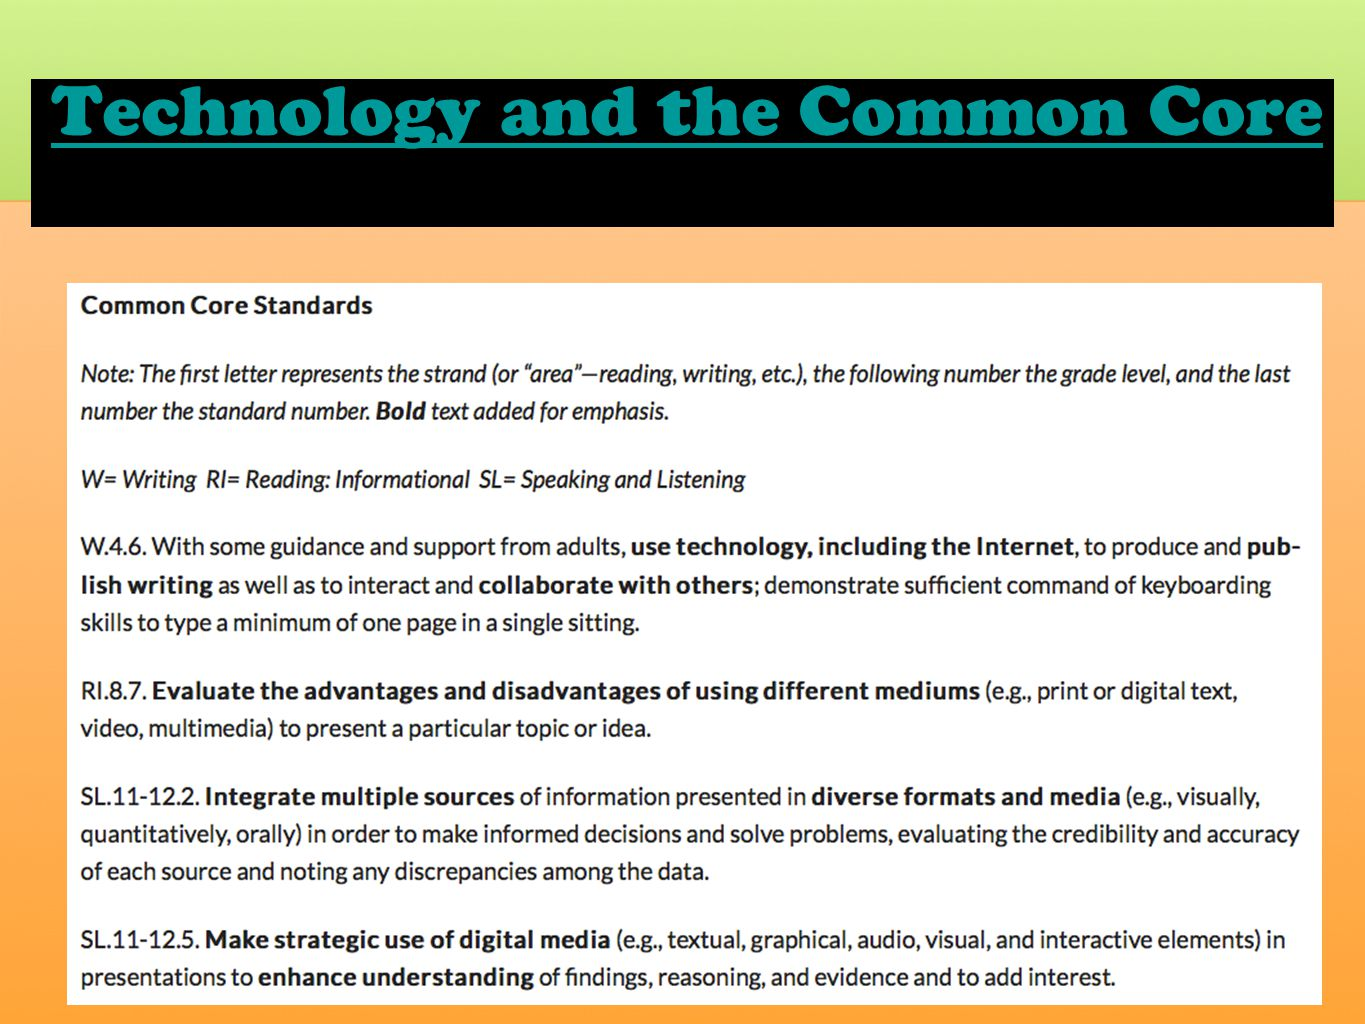 Technology and the Common Core